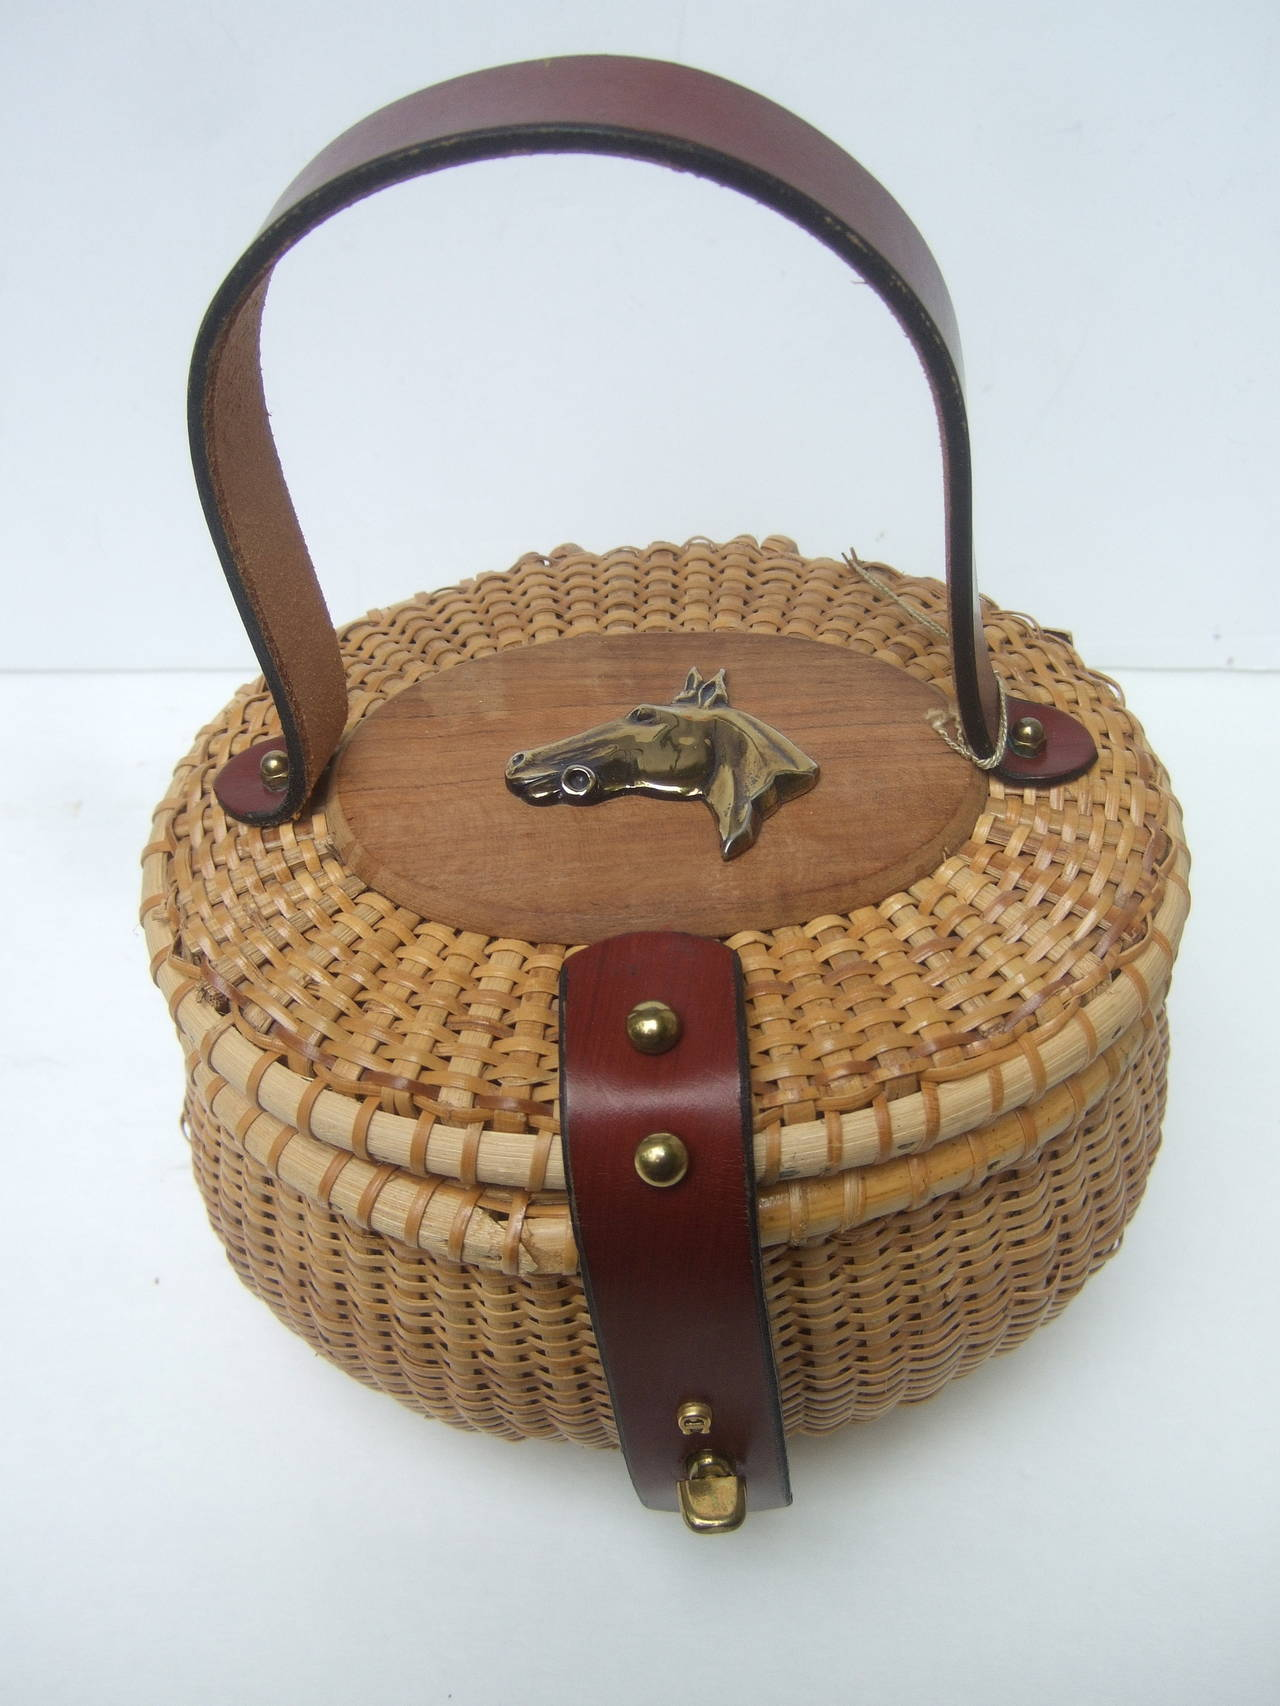 Oval Wicker Basket Equestrian Theme Handbag c 1970s In New never worn Condition For Sale In Santa Barbara, CA